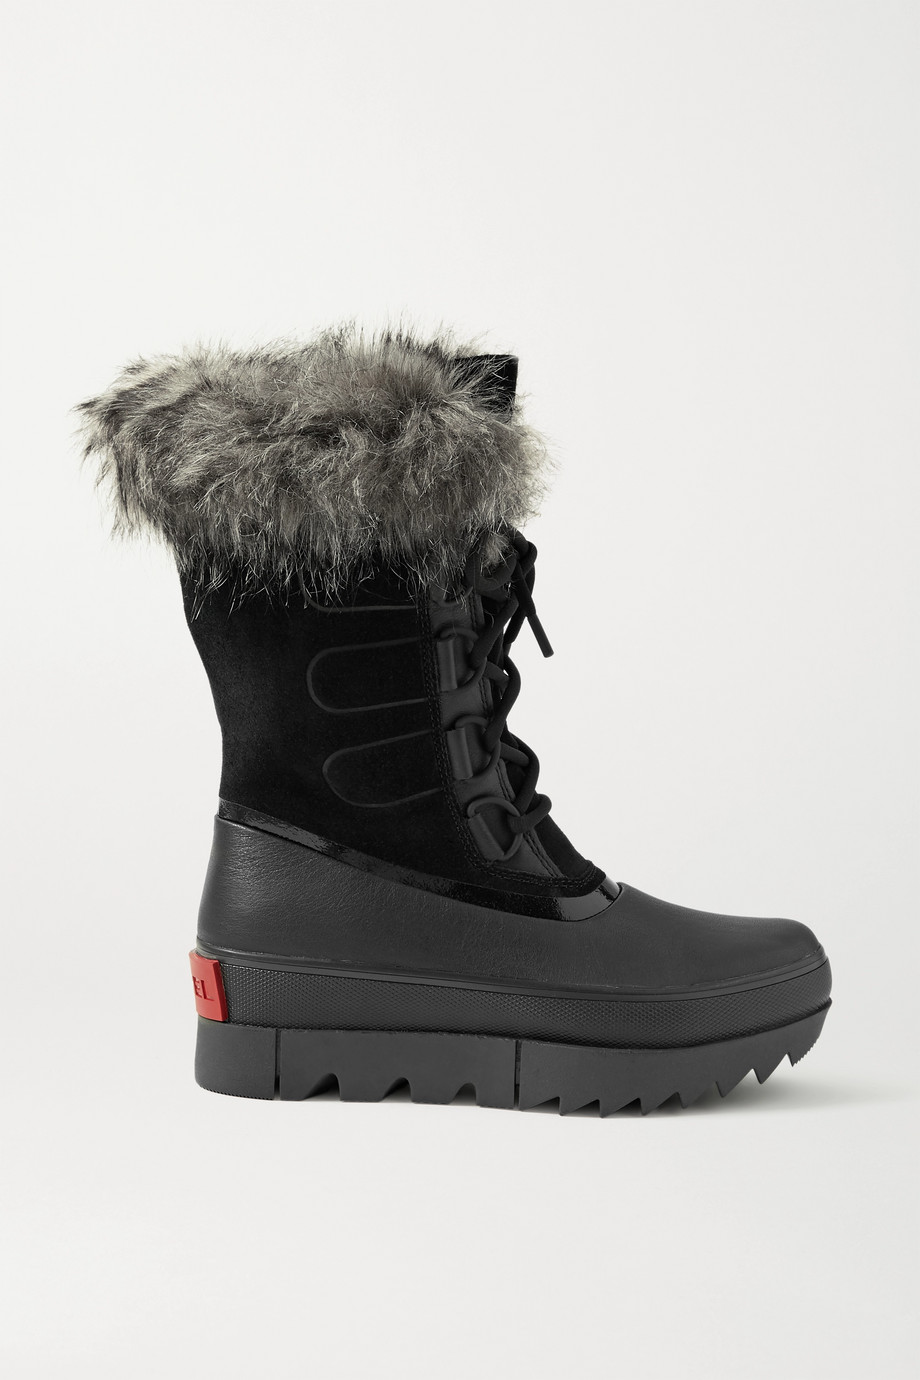 Sorel Joan of Arctic NEXT waterproof faux fur-trimmed suede and leather snow boots